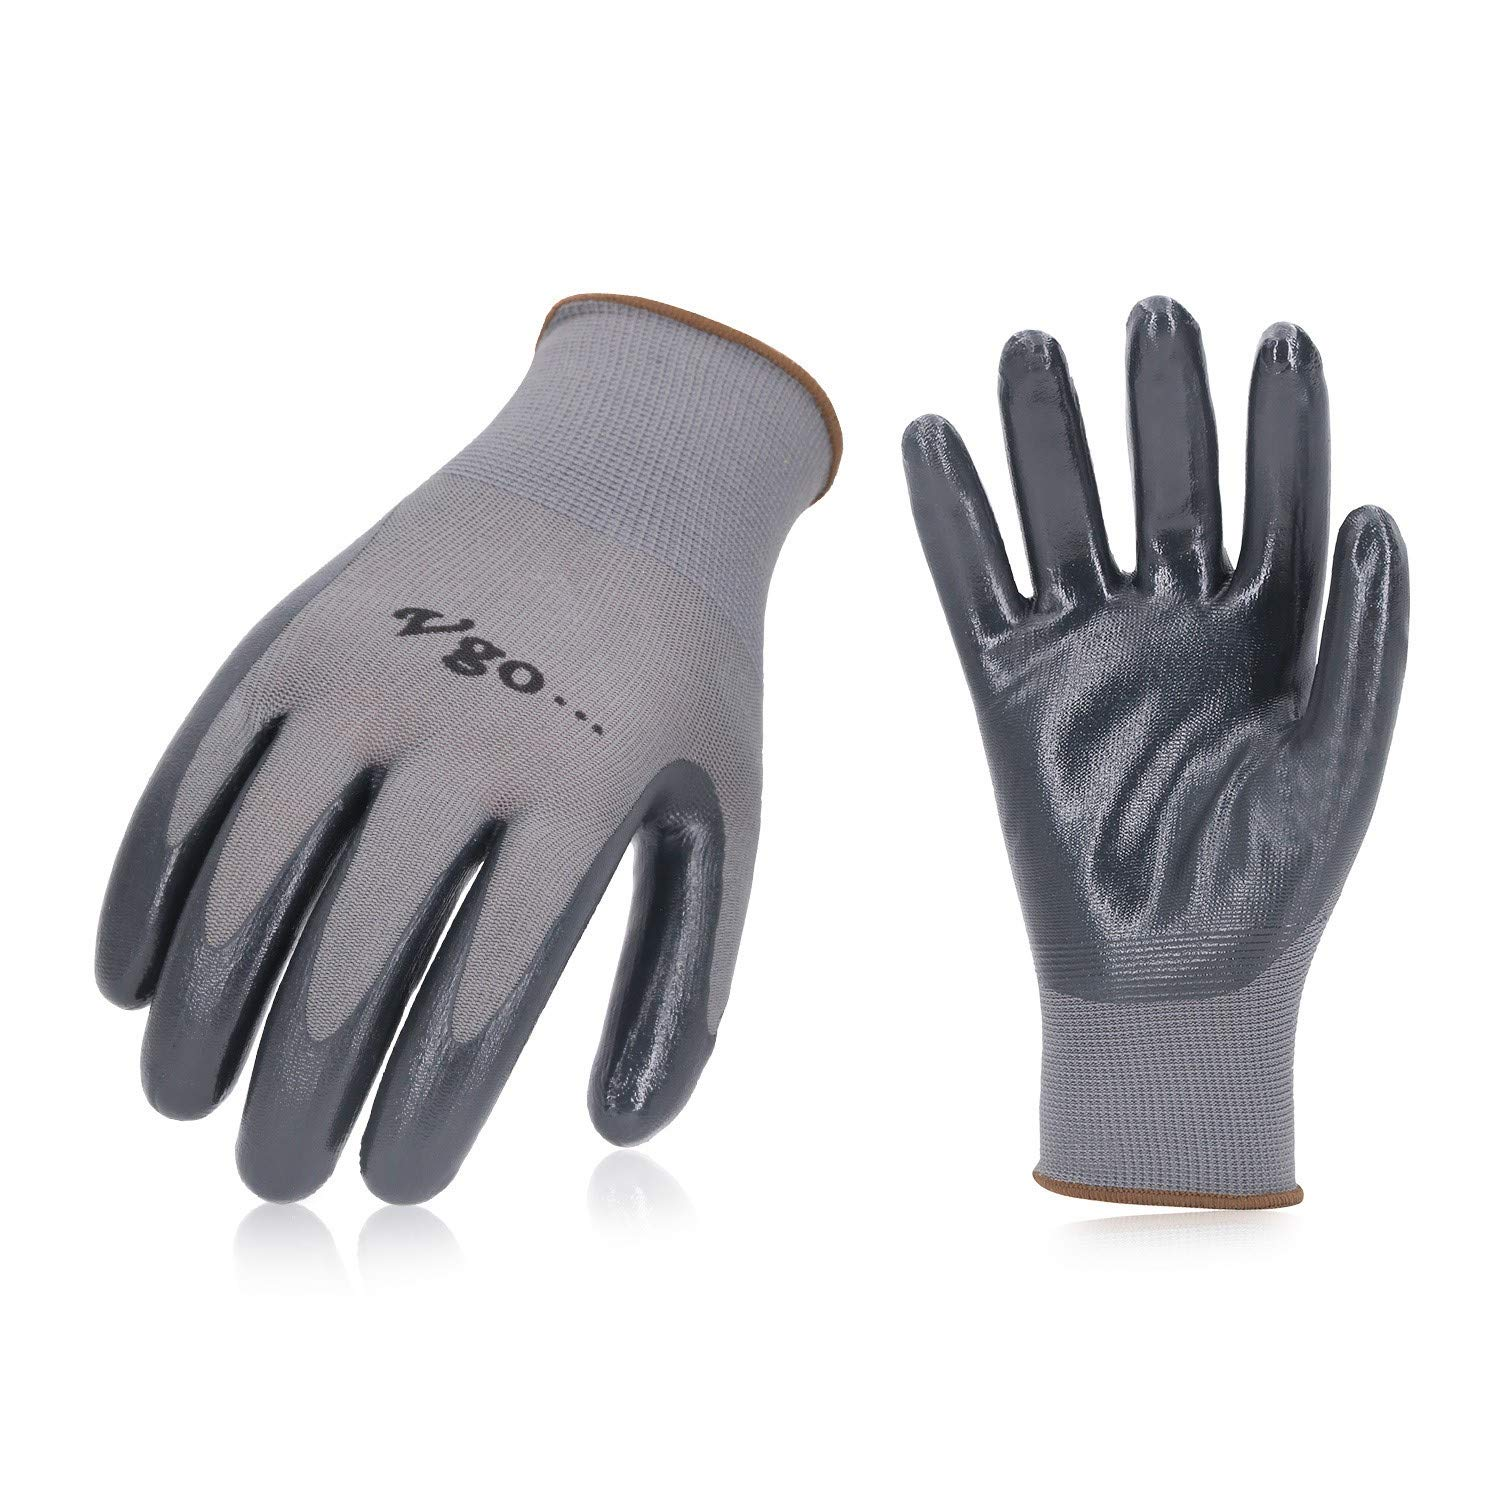 Vgo 10-Pairs Nitrile Coating Gardening and Work Gloves (Size XL,Grey, NT2110)